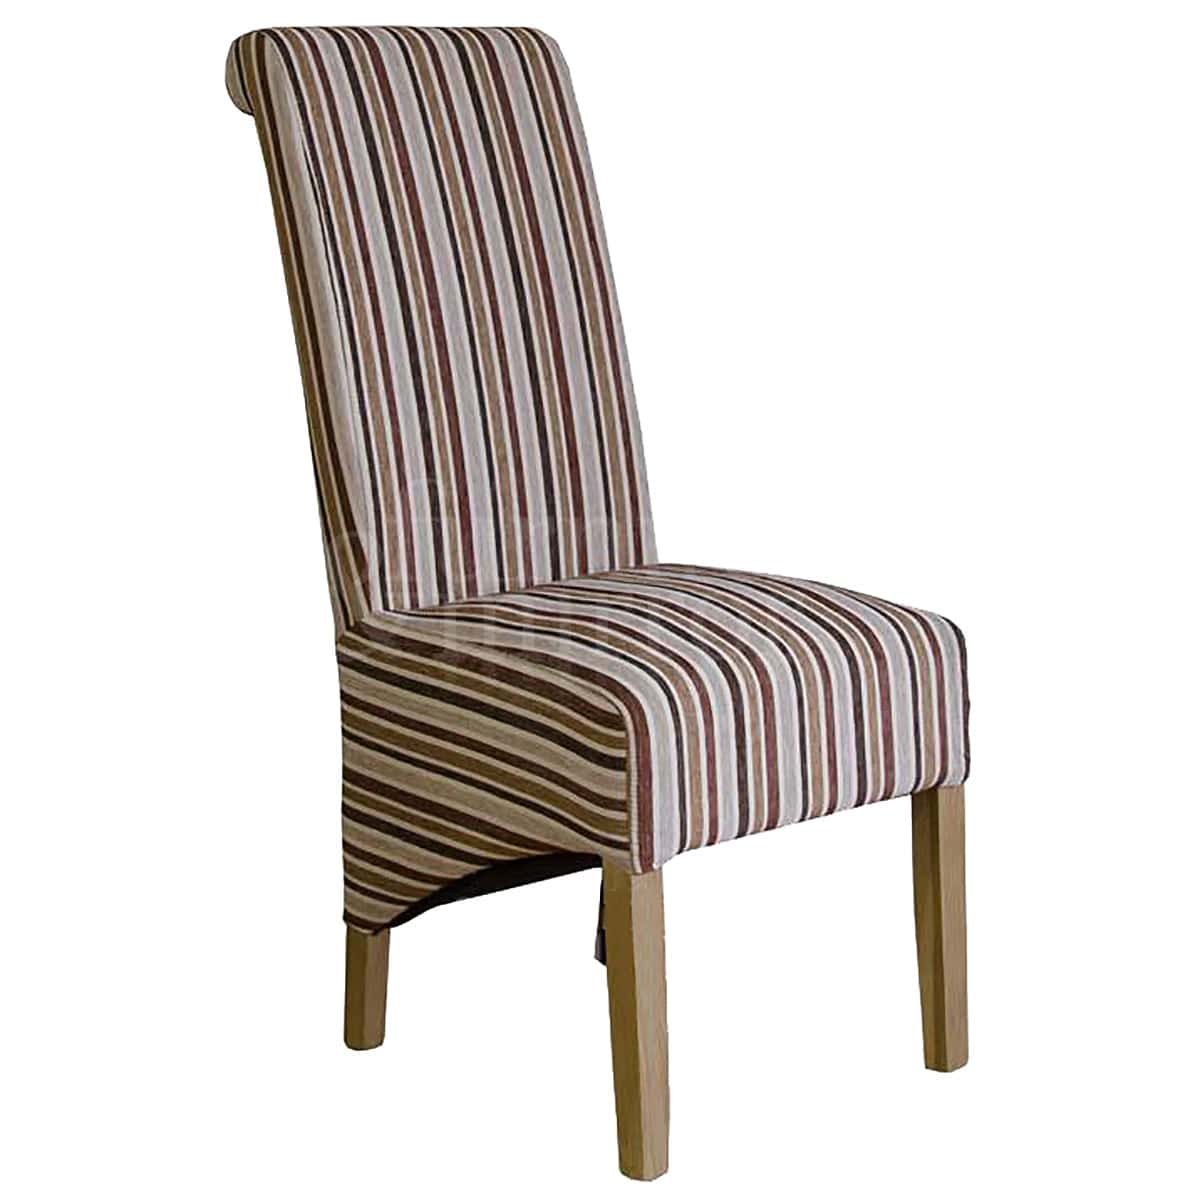 fabrics for chairs striped theatre chair accessories rollback royal fabric dining furniture and